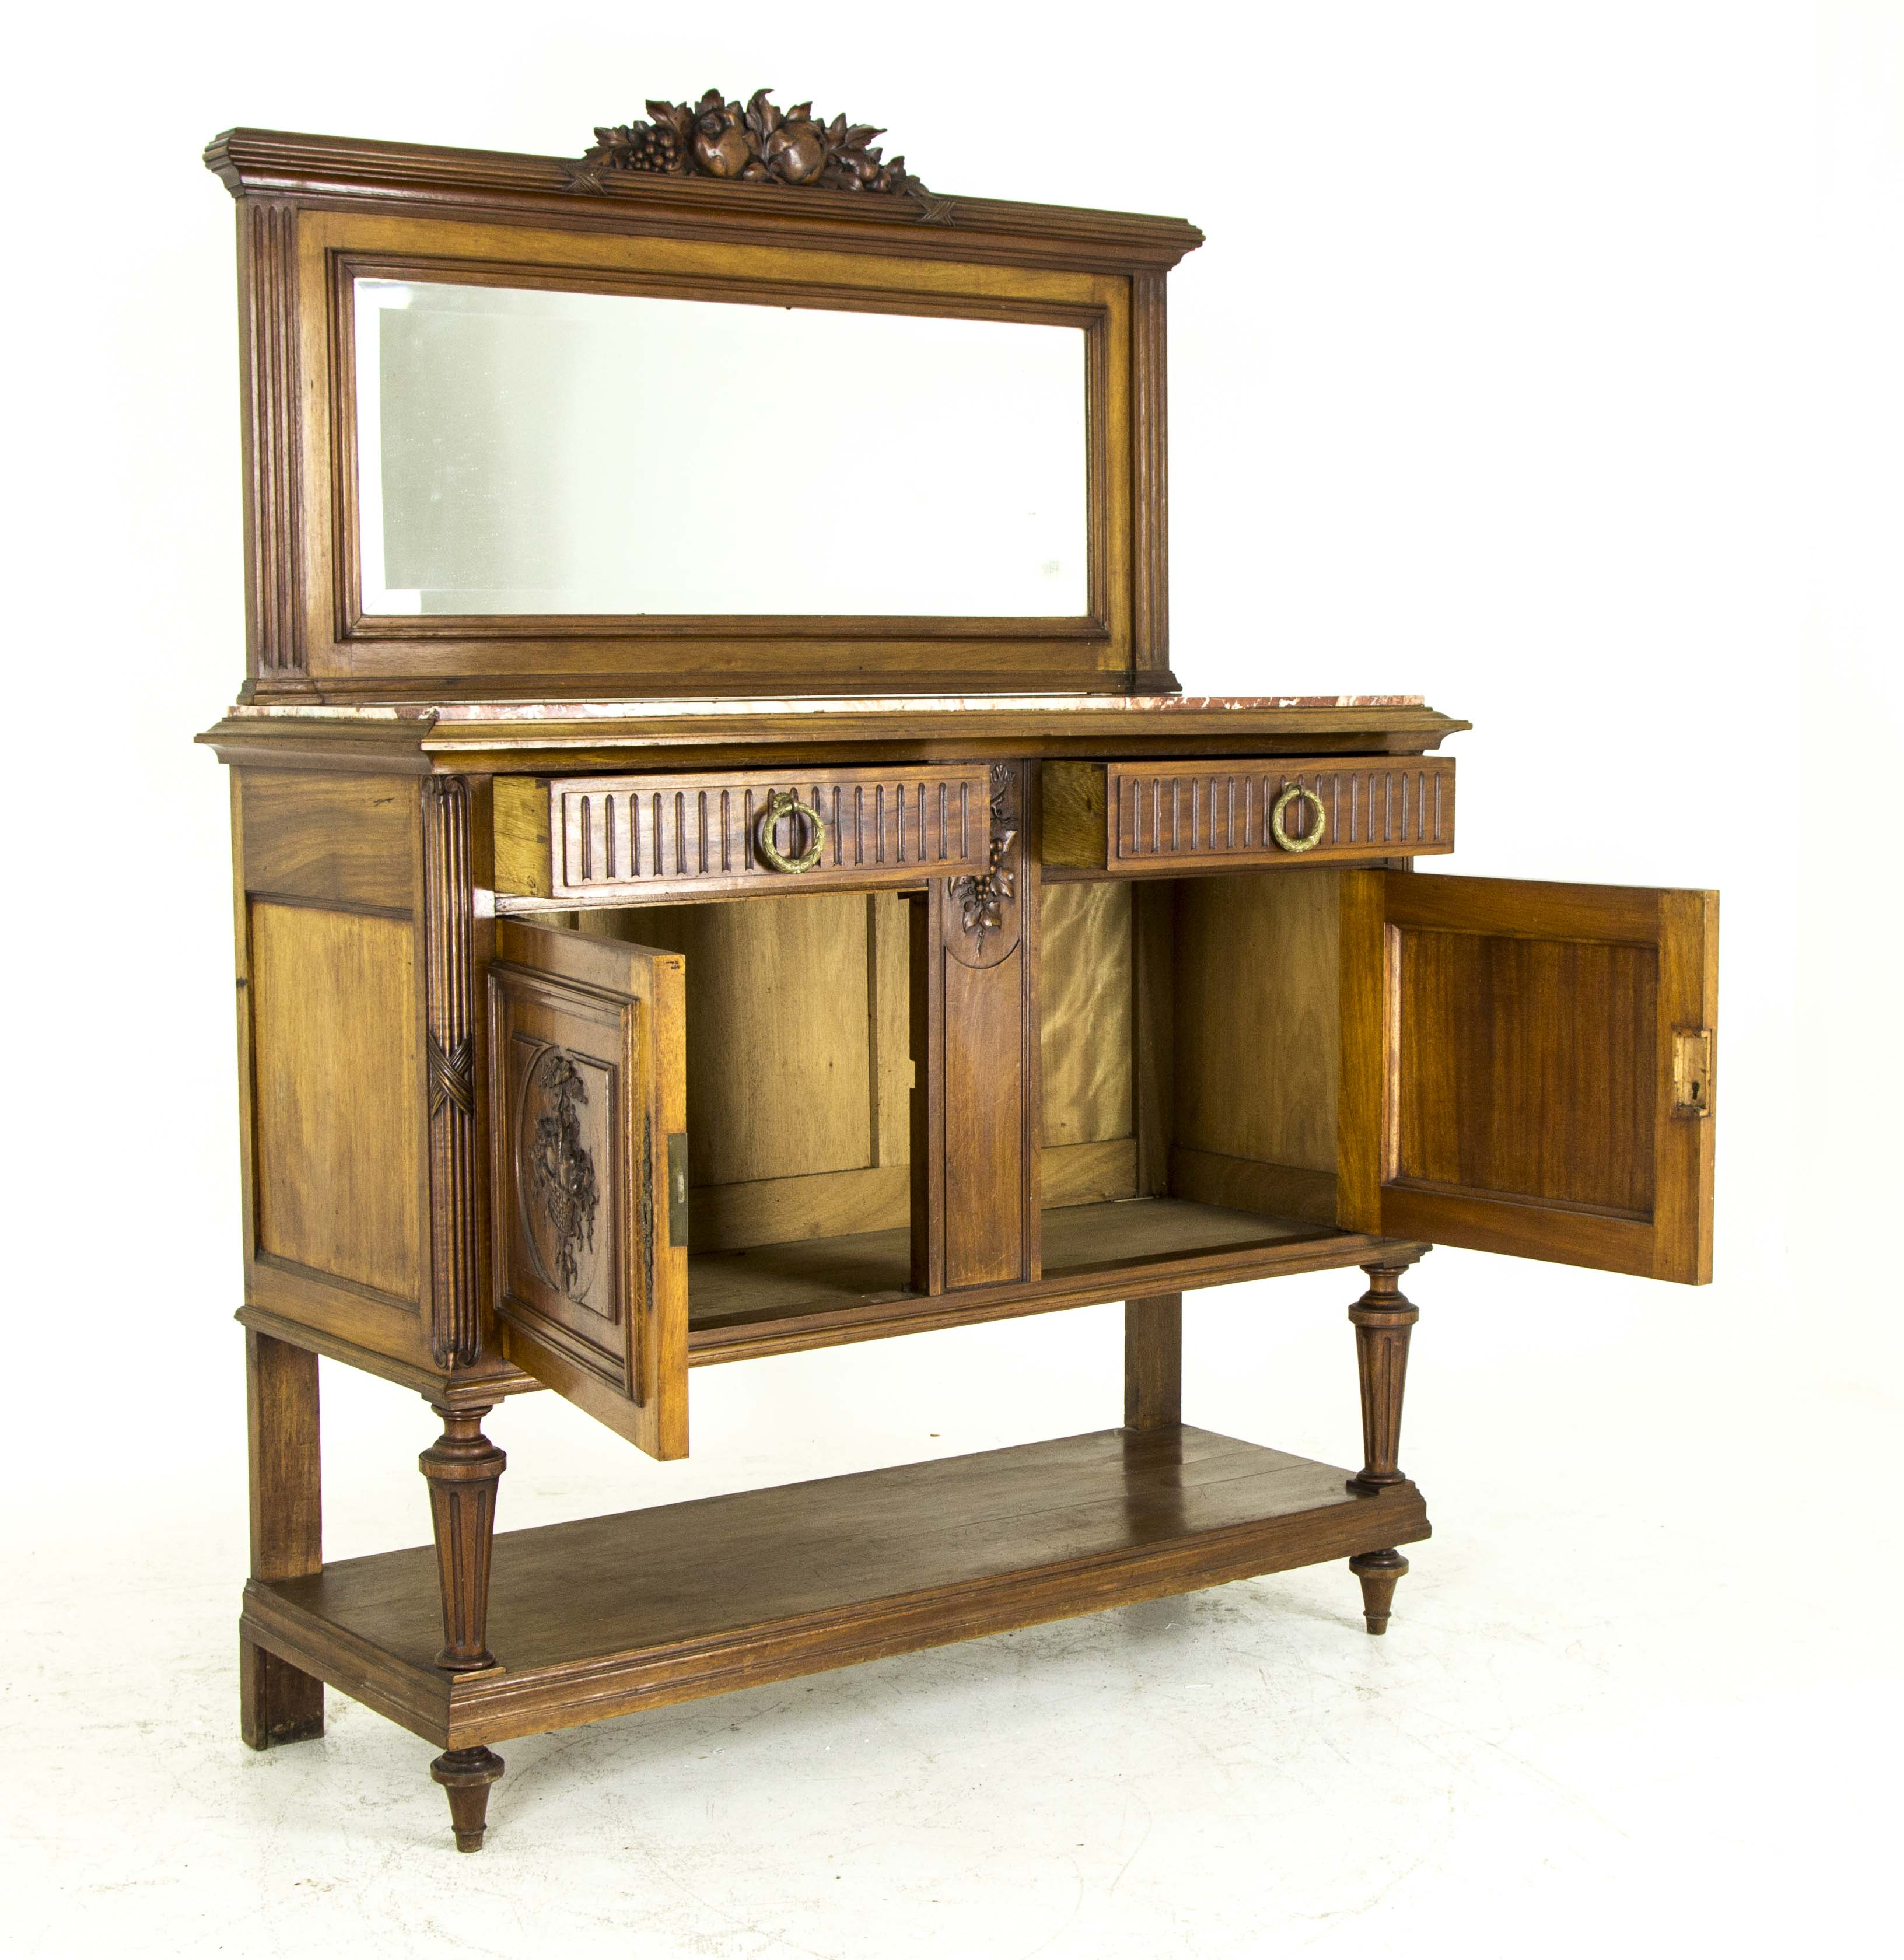 B566 Antique French Walnut Marble Top Sideboard Credenza